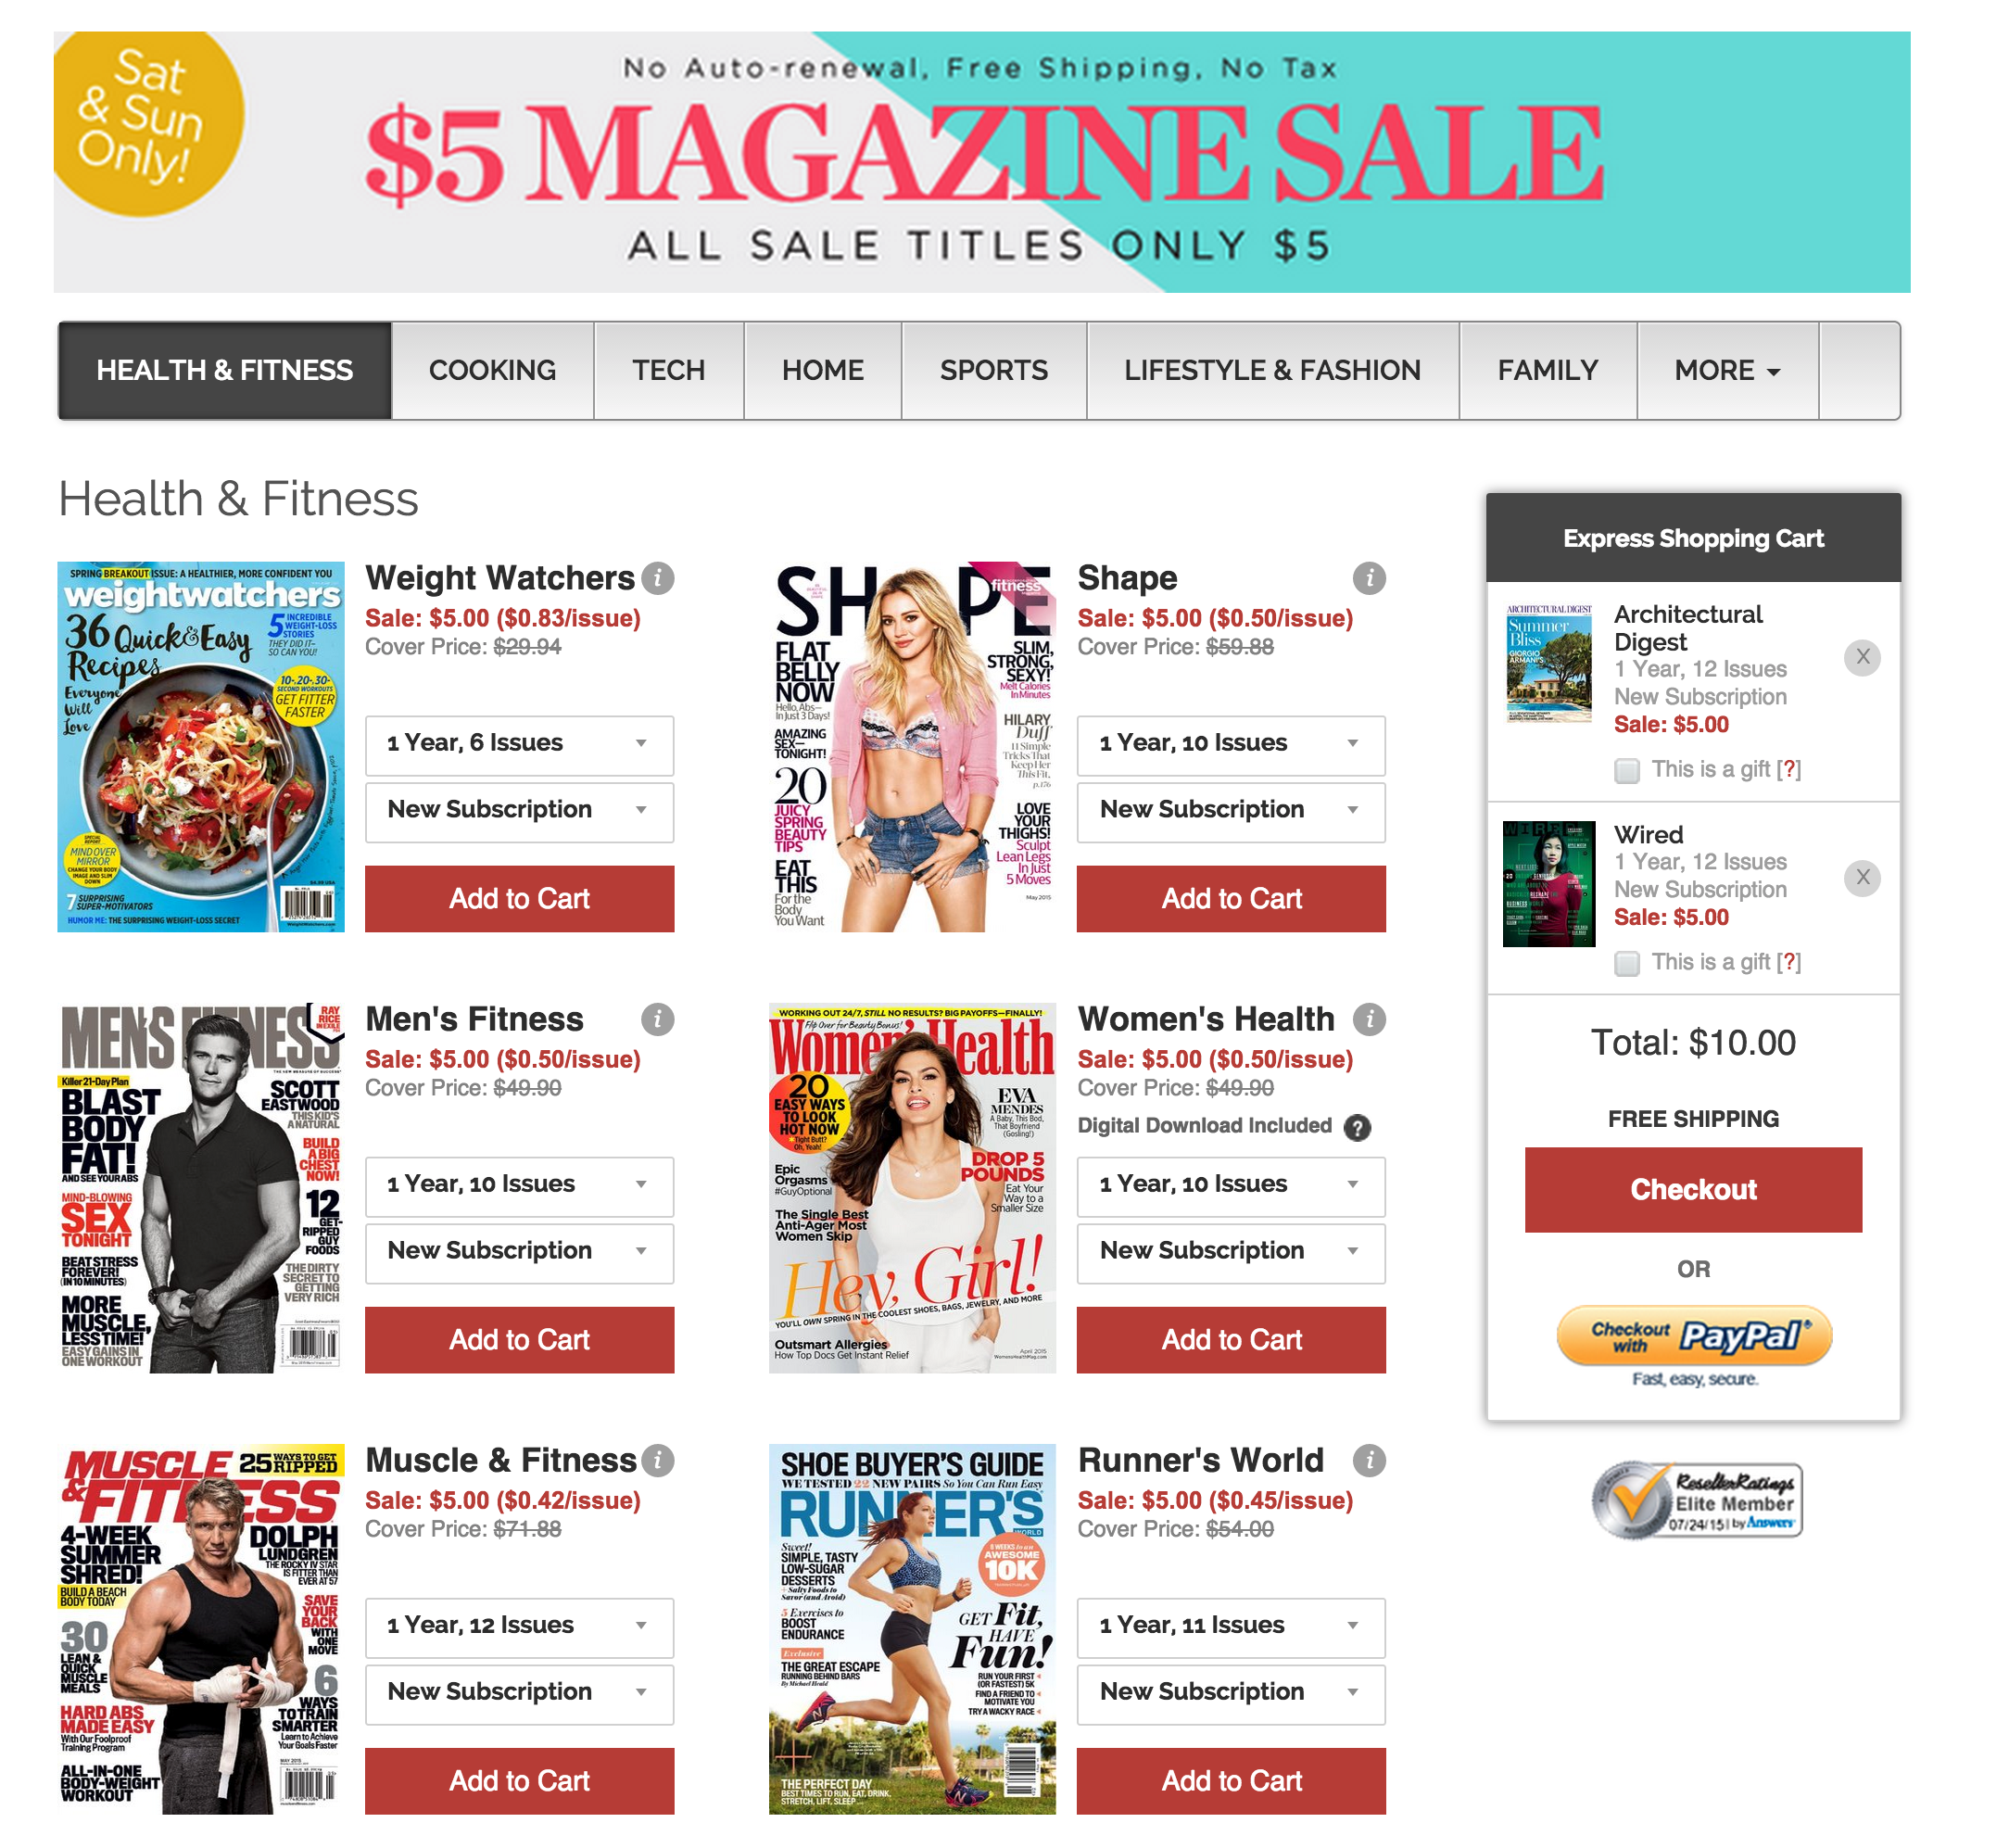 Magazine subs from $3/yr: Motor Trend, ESPN, Wired, GQ, Dwell, Arch ...